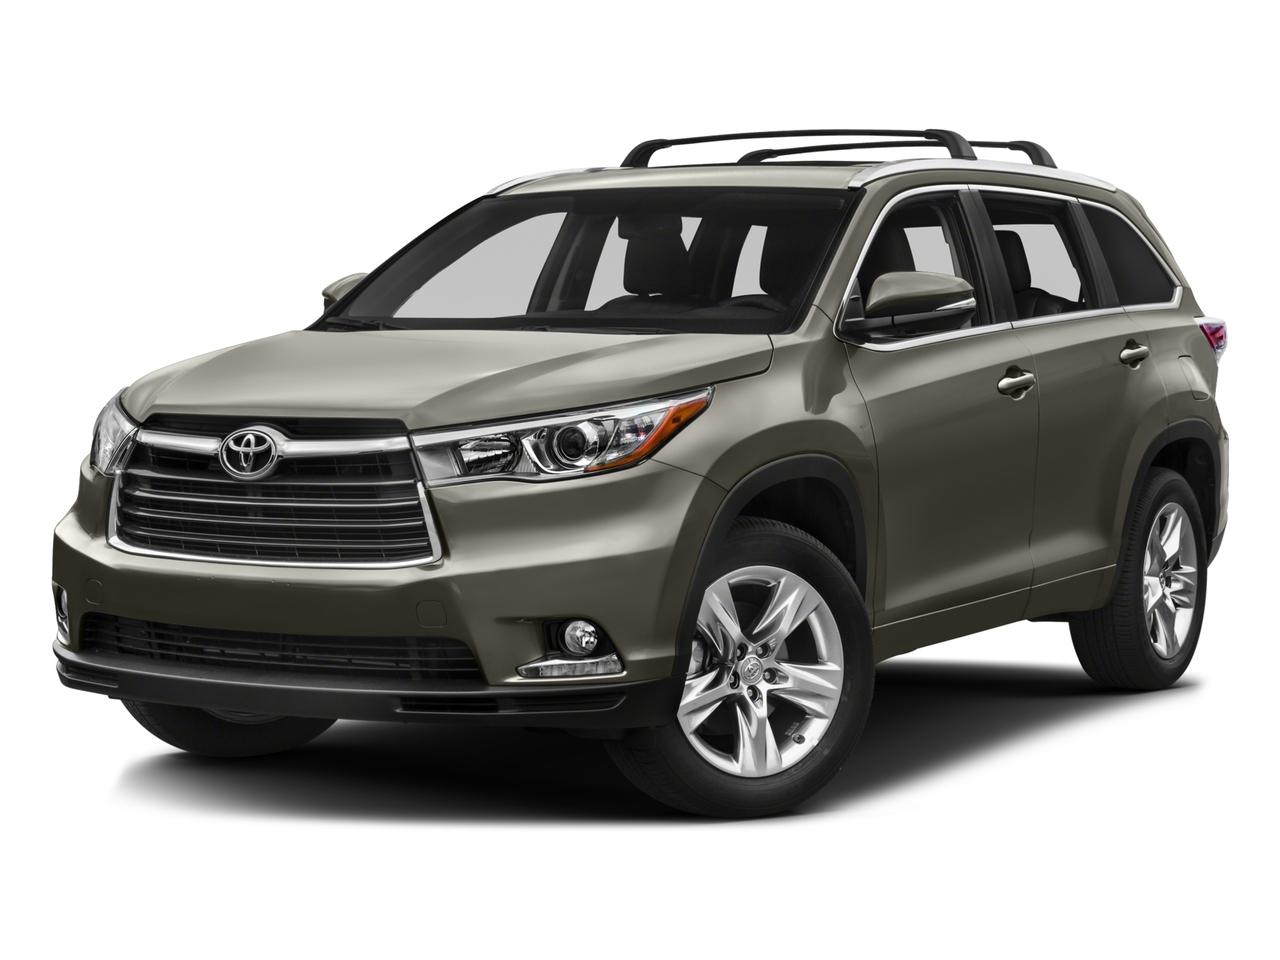 2016 Toyota Highlander Vehicle Photo in Grapevine, TX 76051